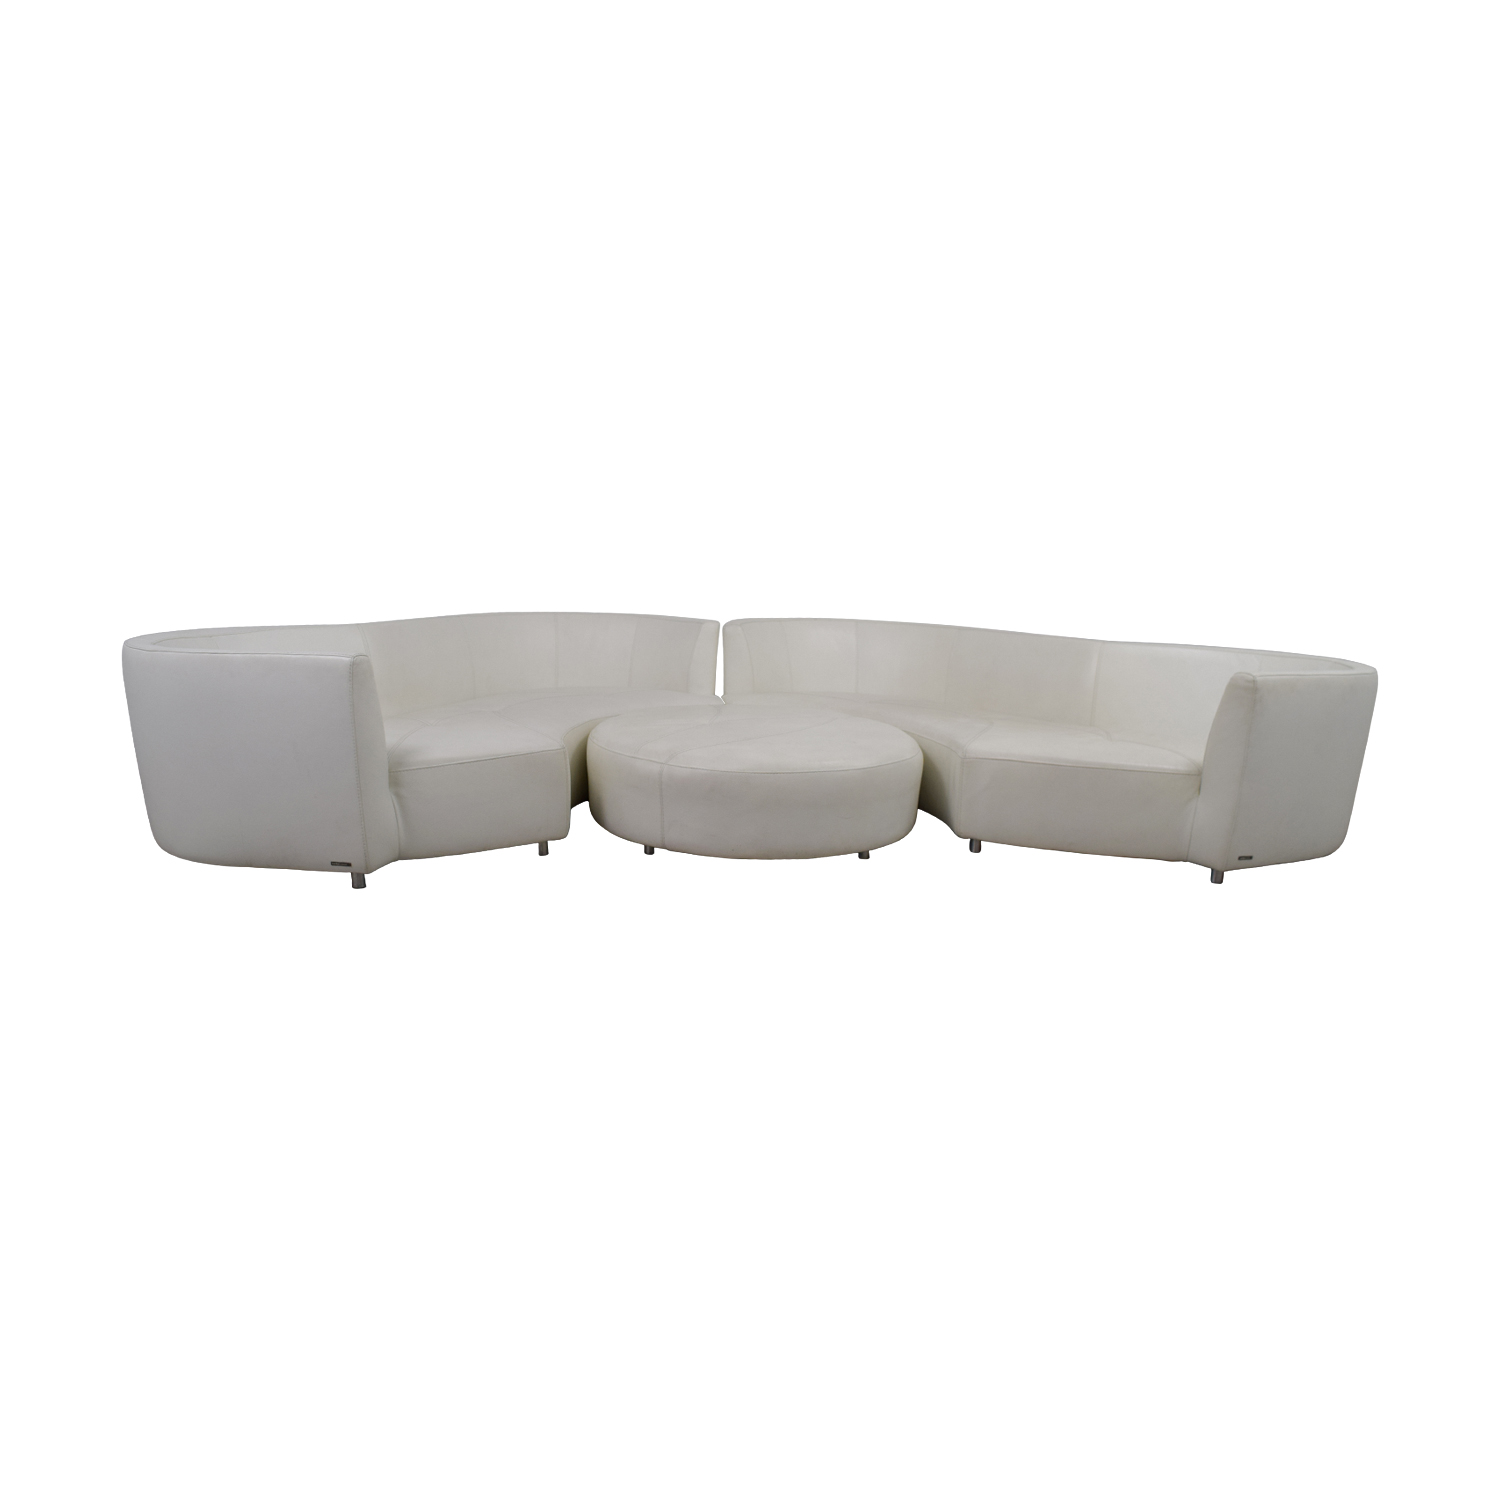 shop Roche Bobois Roche Bobois White Digital Curved Three-Cushion Sofas with Ottoman online